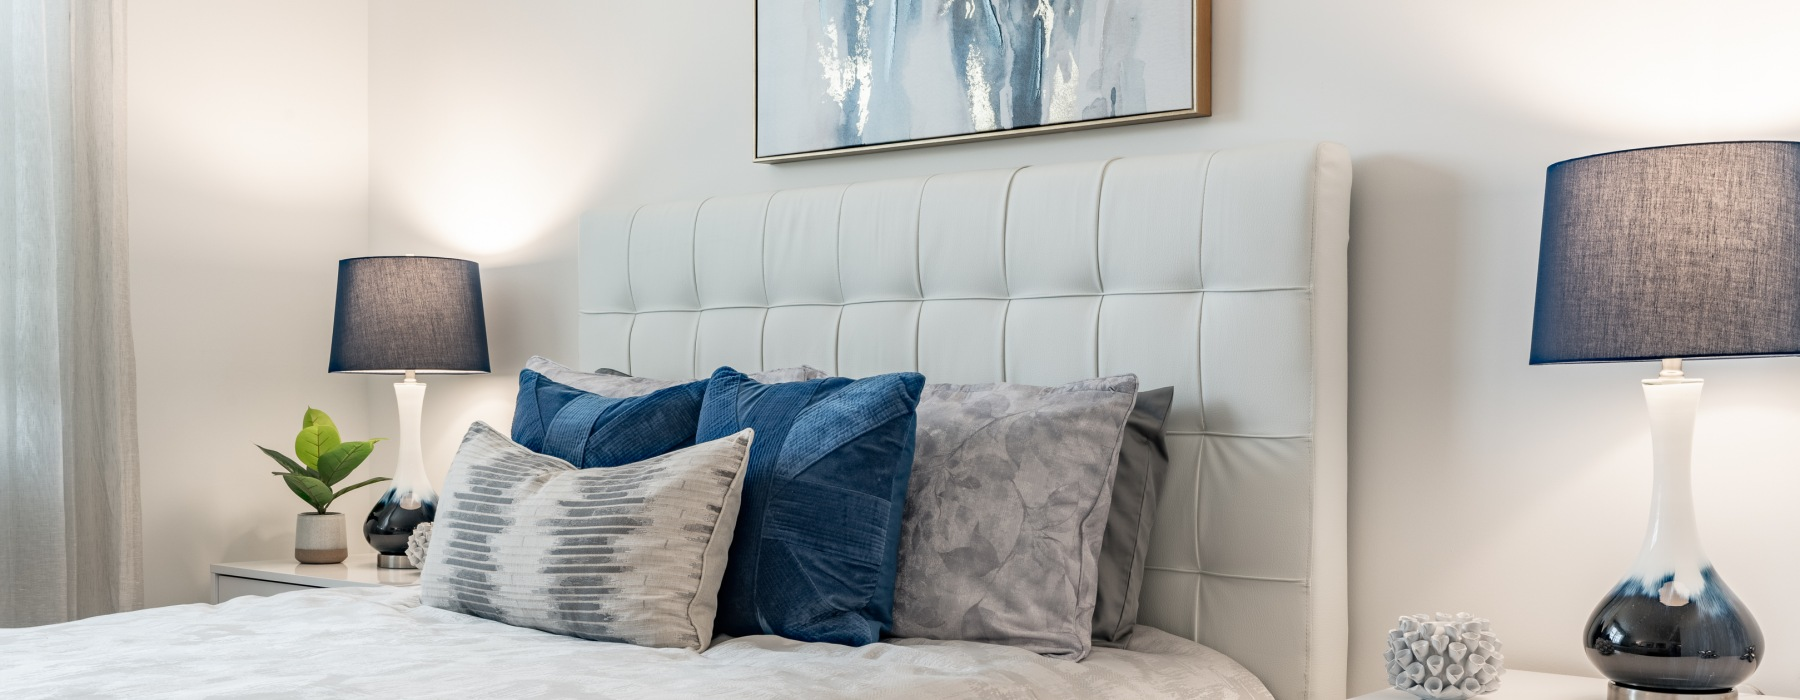 Bedroom with Accent Pieces